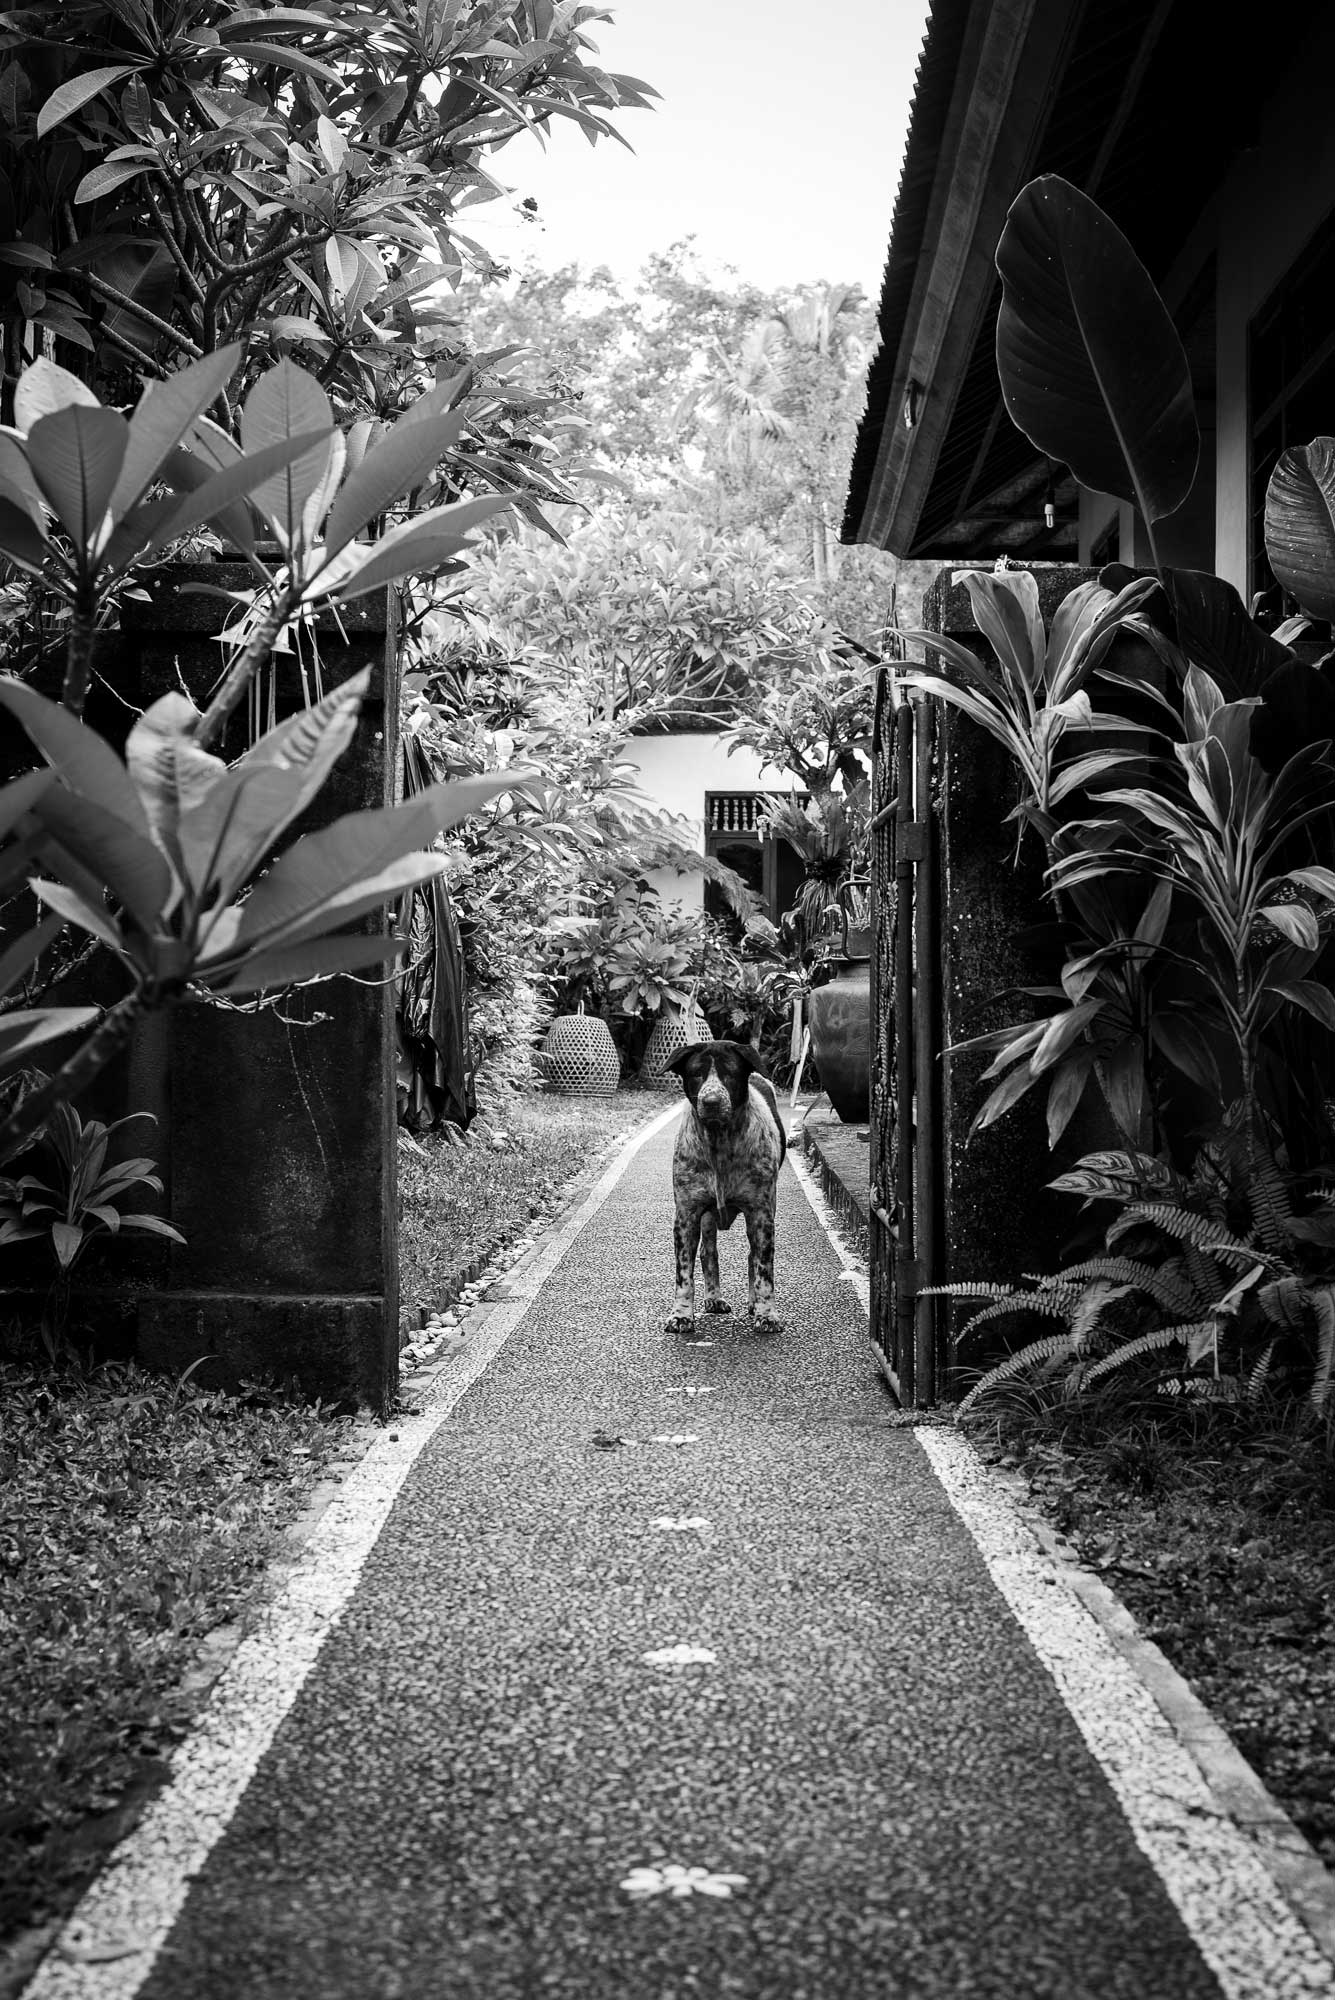 Bali Dog at Home - Bali Street Photographer